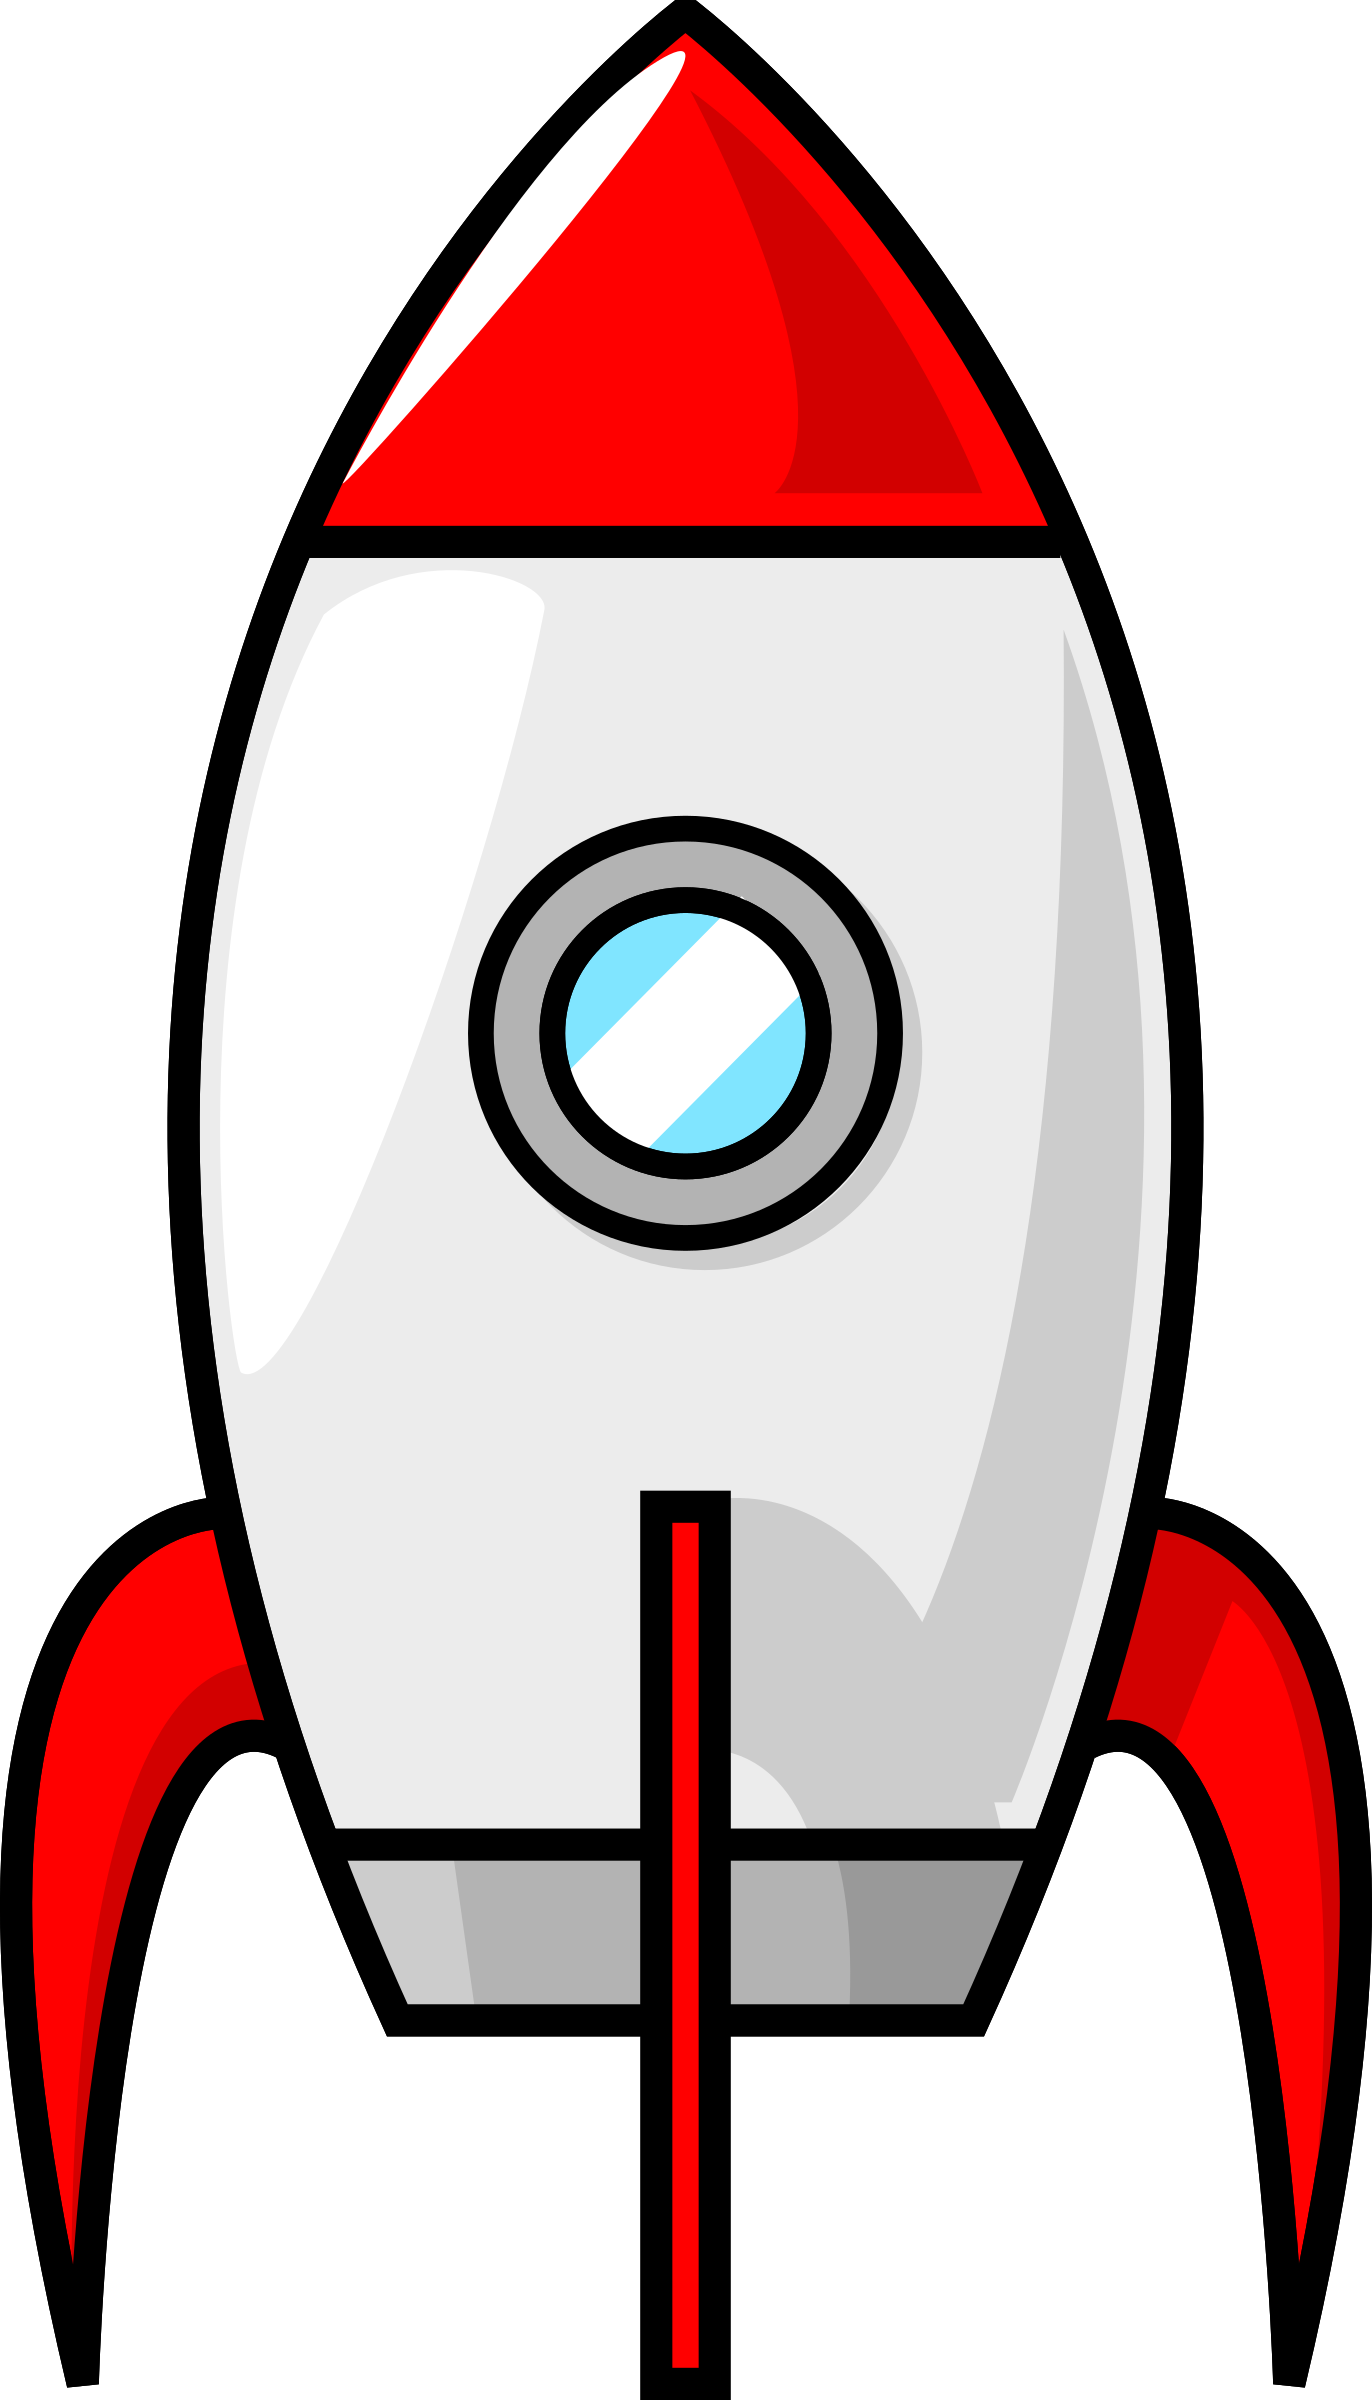 Planets clipart red moon. A cartoon rocket by